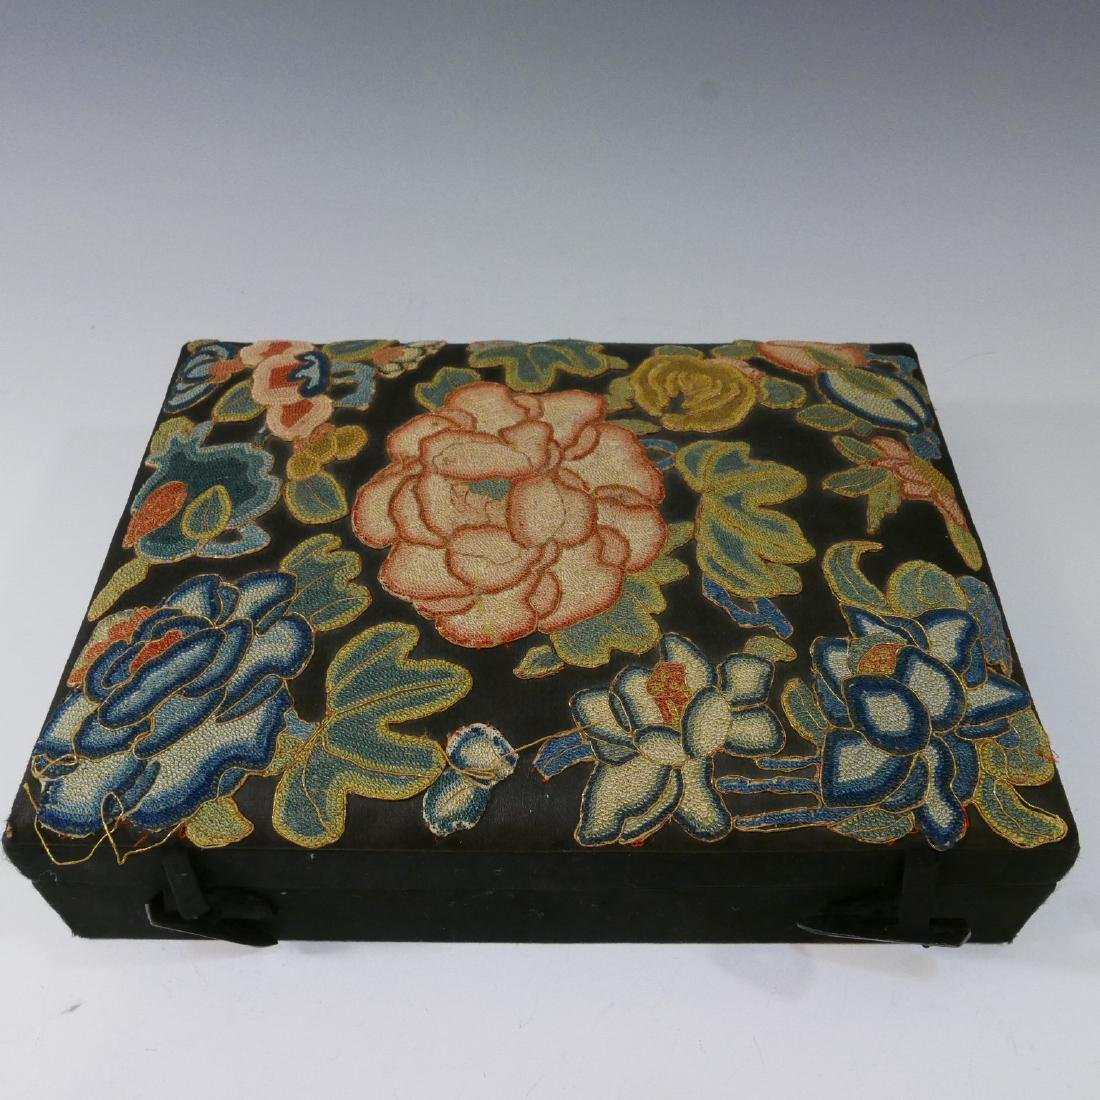 ANTIQUE CHINESE KESI SILK EMBROIDERED JEWELRY BOX - 8